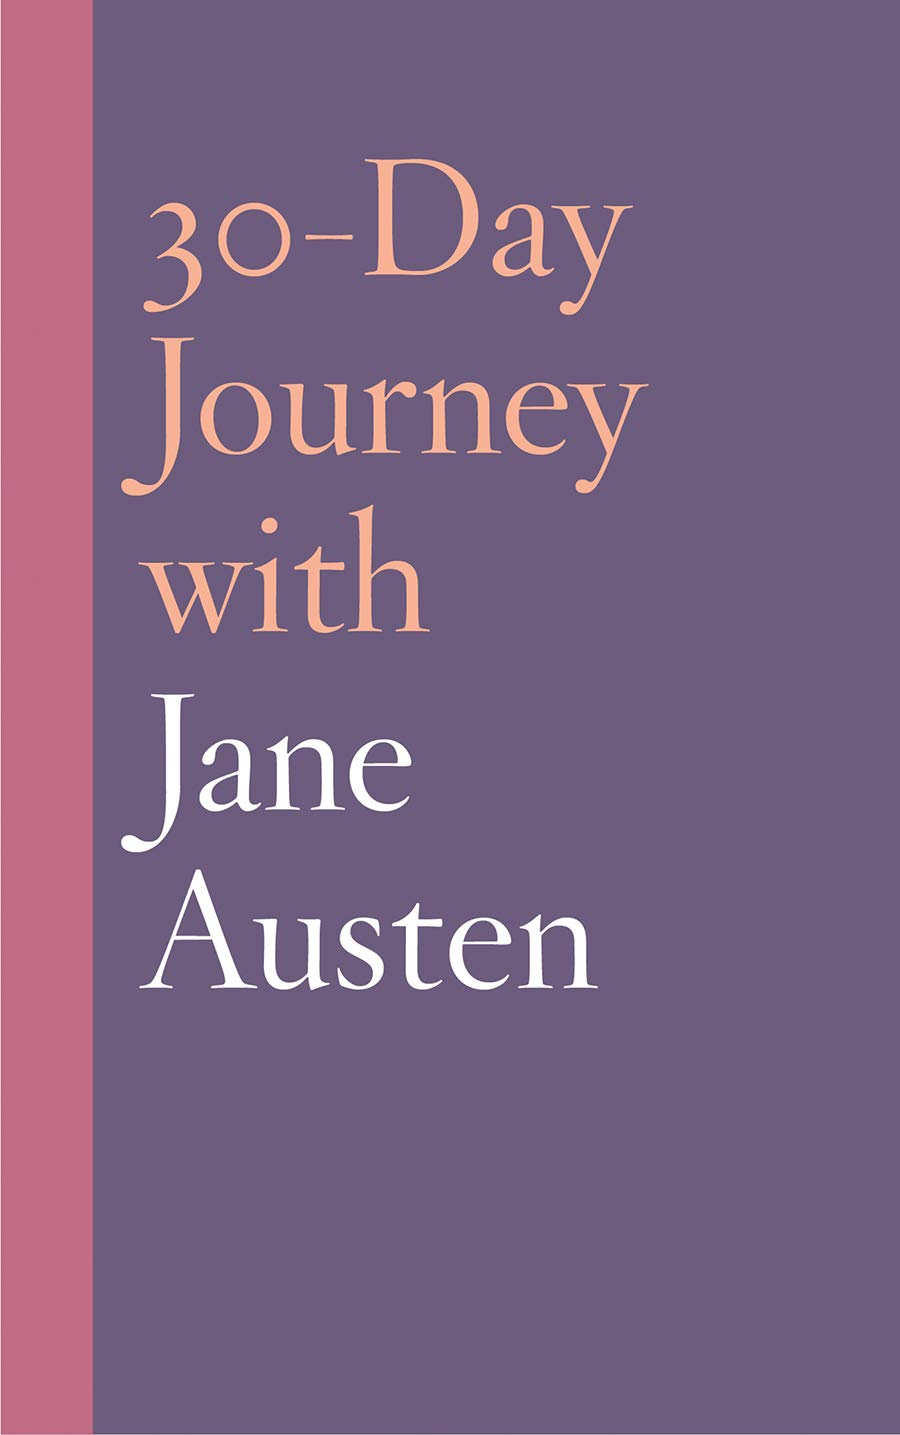 30-Day Journey with Jane Austen (30-Day Journey)